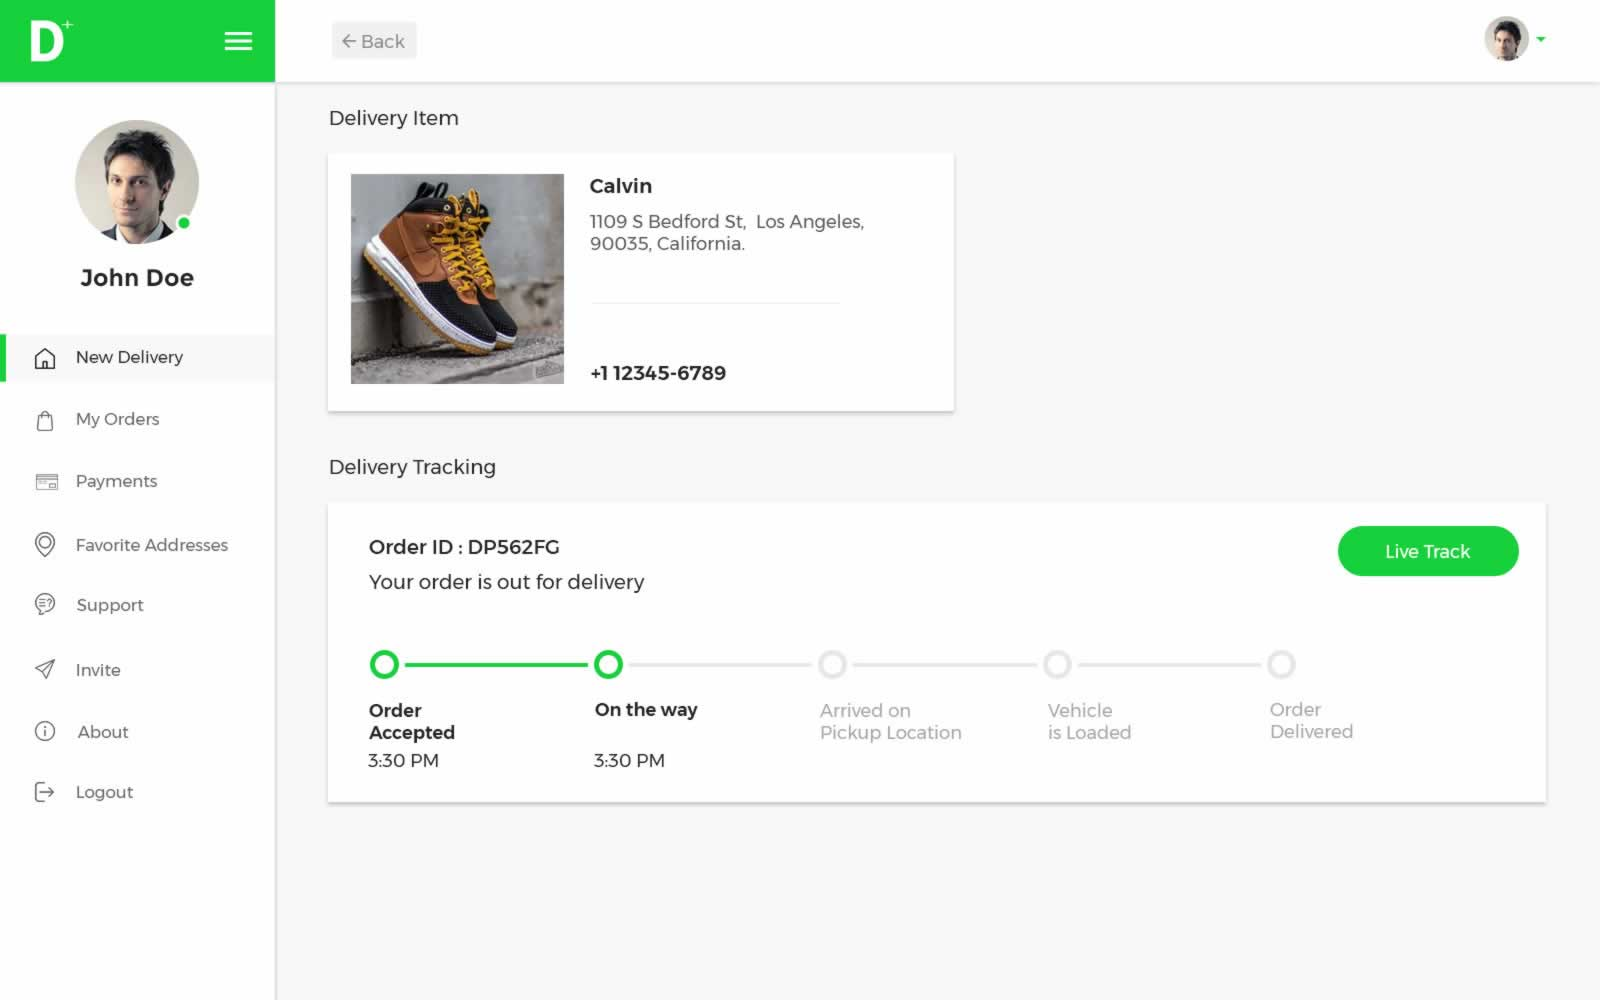 Submit your request! A Delivery Plus agent will arrive soon to pick up your package and you can monitor the progress of your shipment live.